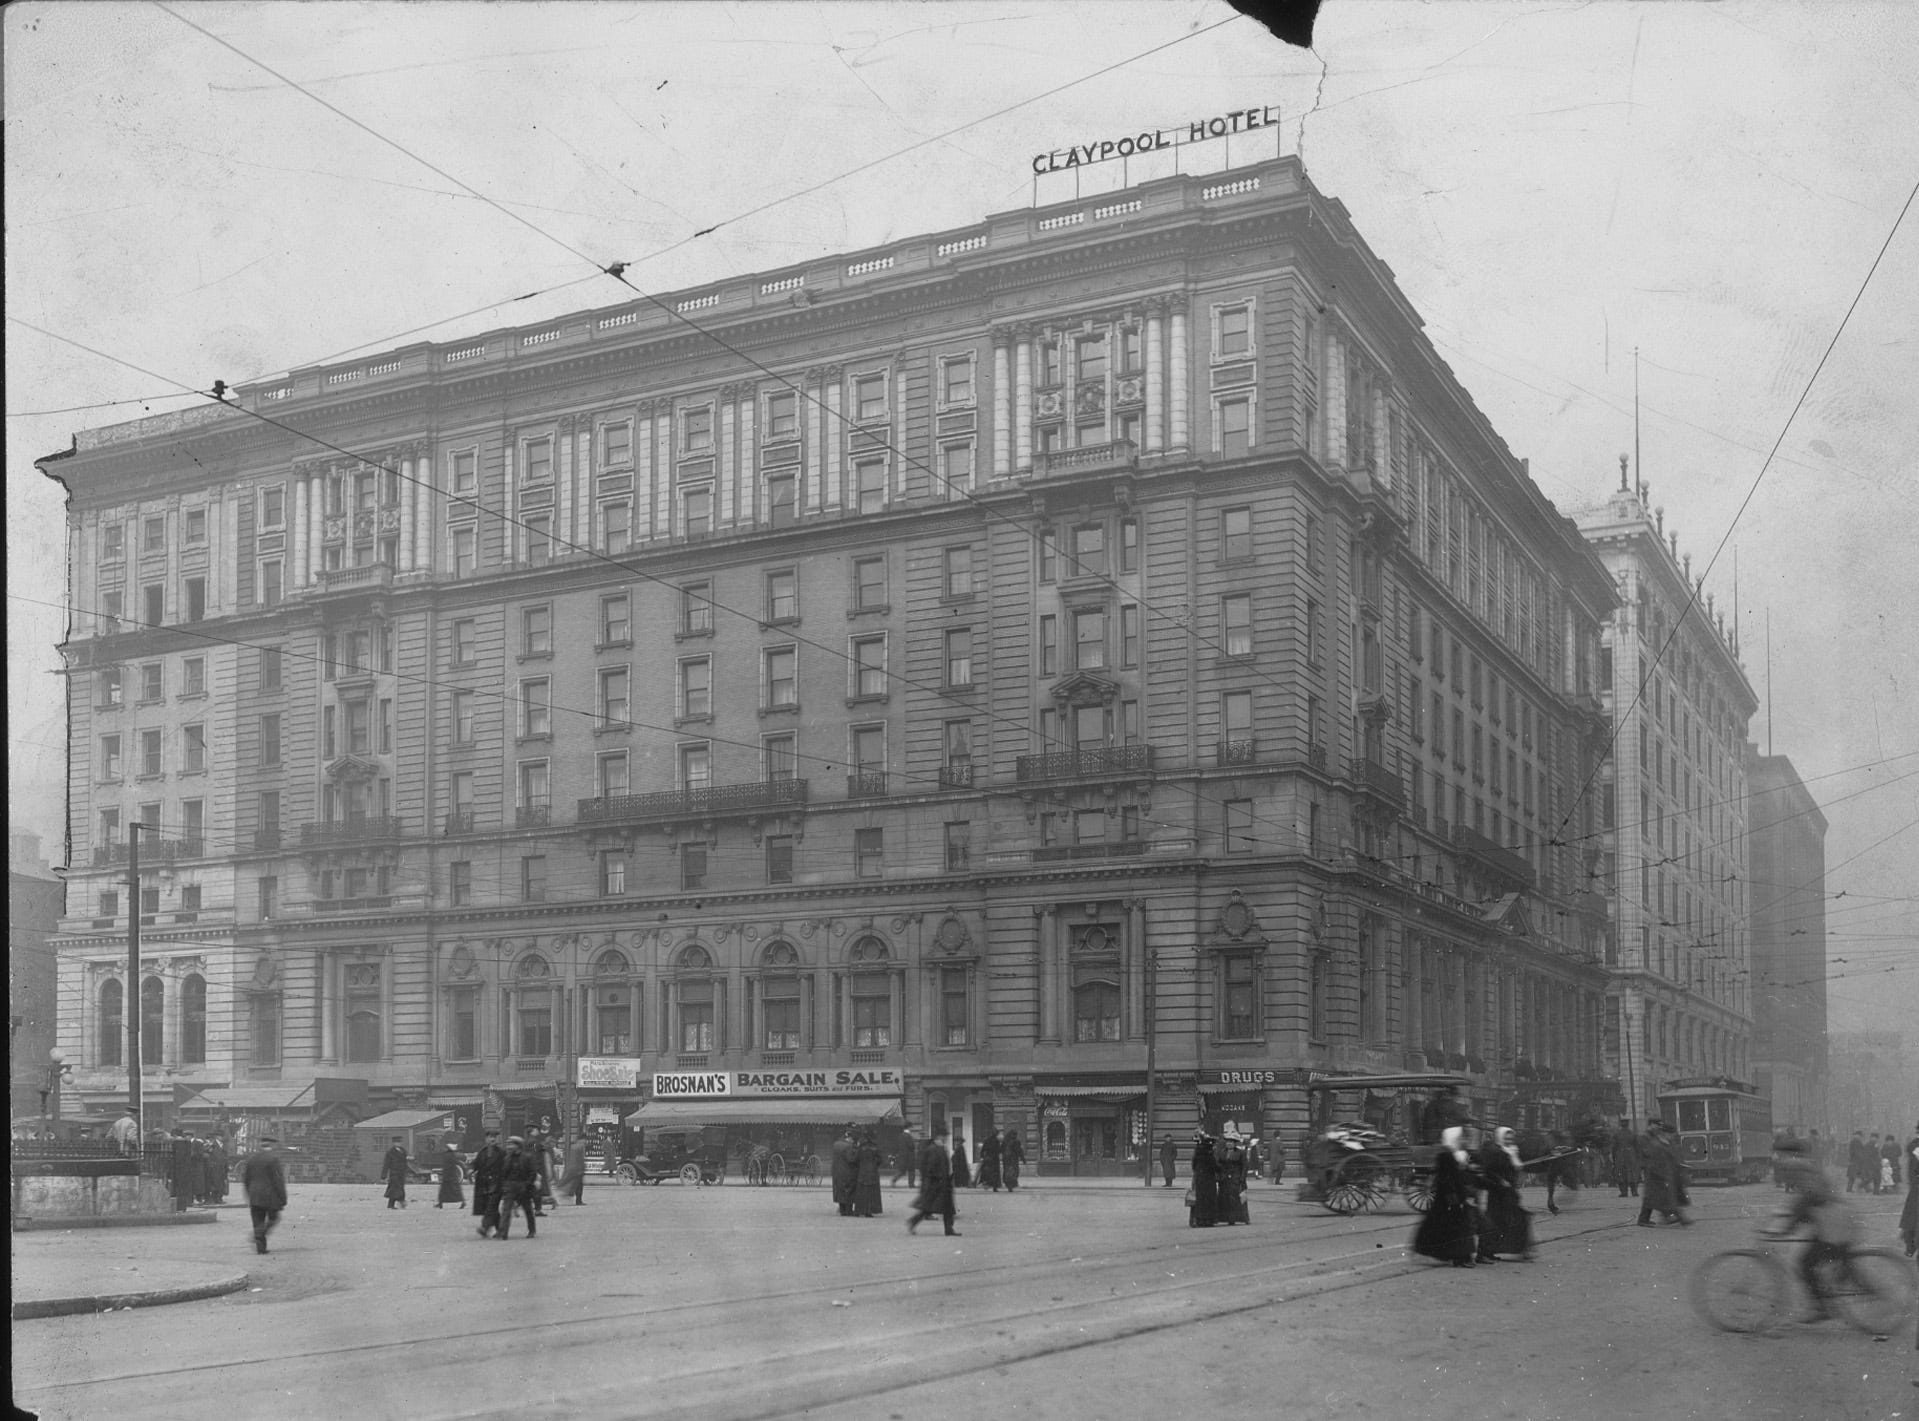 The Claypool Hotel was built in 1903 on the northwest corner of Washington and Illinois Streets, on the site of the old Bates House, where President Abraham Lincoln addressed a crowd in 1861. Many political decisions were made in the hotelÕs smoked-filled rooms. It was razed in 1969.